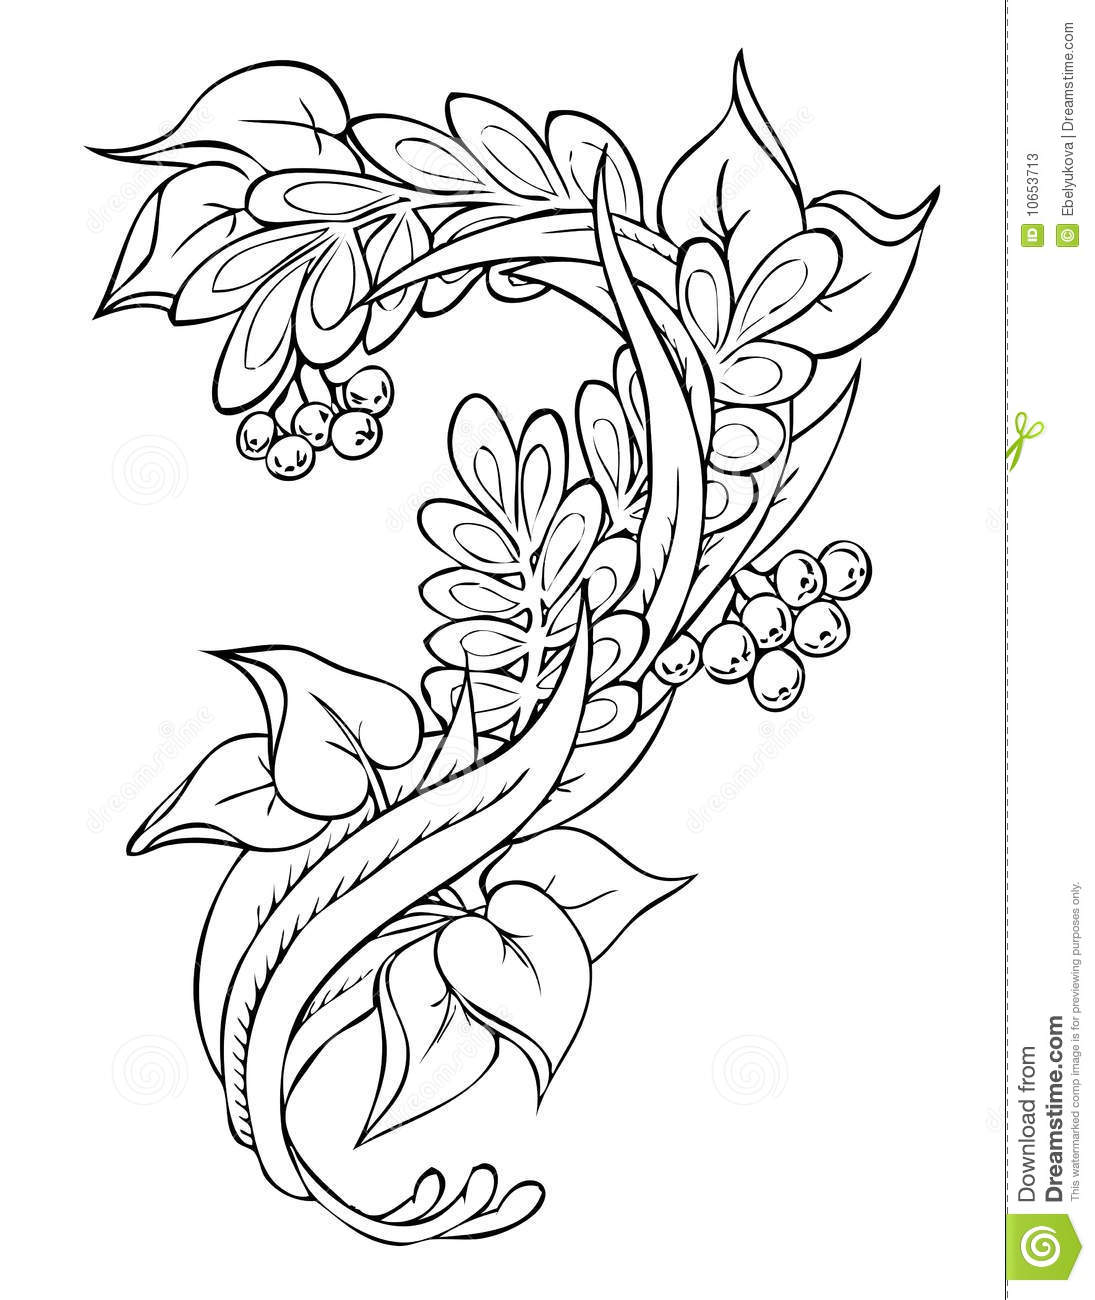 Drawing Lines Freehand : Floral abstract freehand drawing stock vector